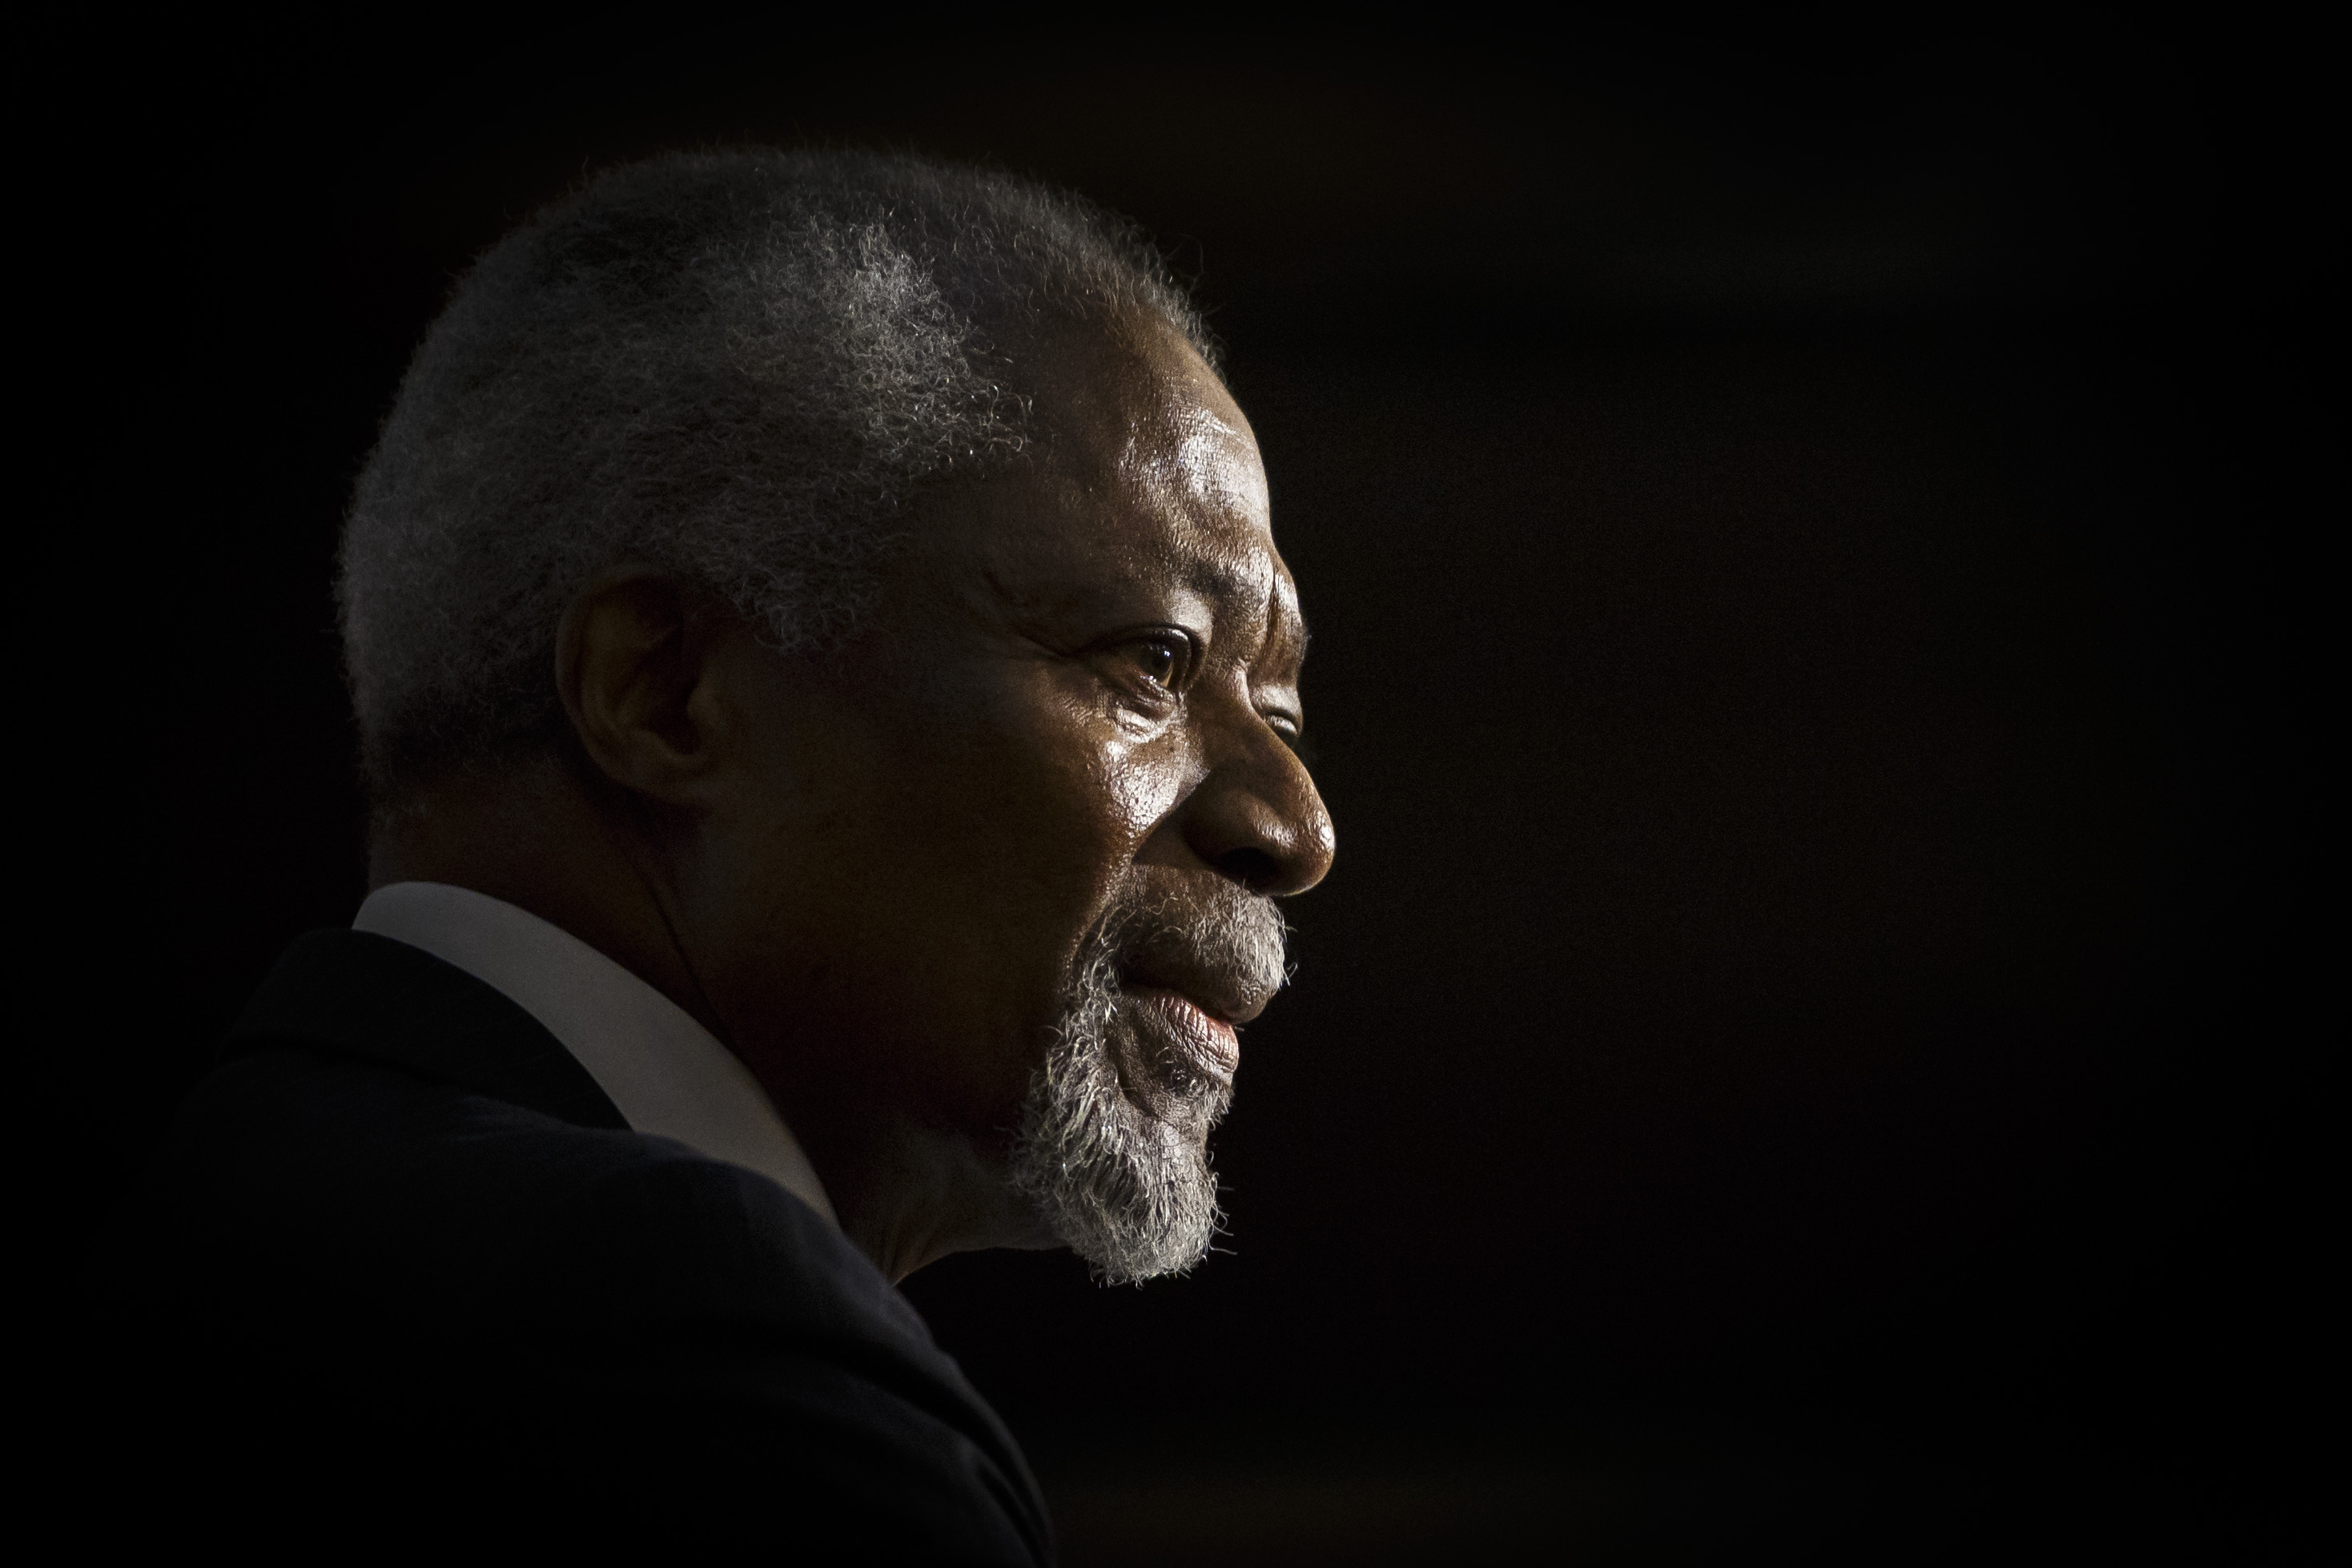 Kofi Annan, 7th Secretary-General of the United Nations, will give a lecture entitled  Looking for a New Global Order  at German Foreign Ministry on January 28, 2016 in Berlin, Germany.